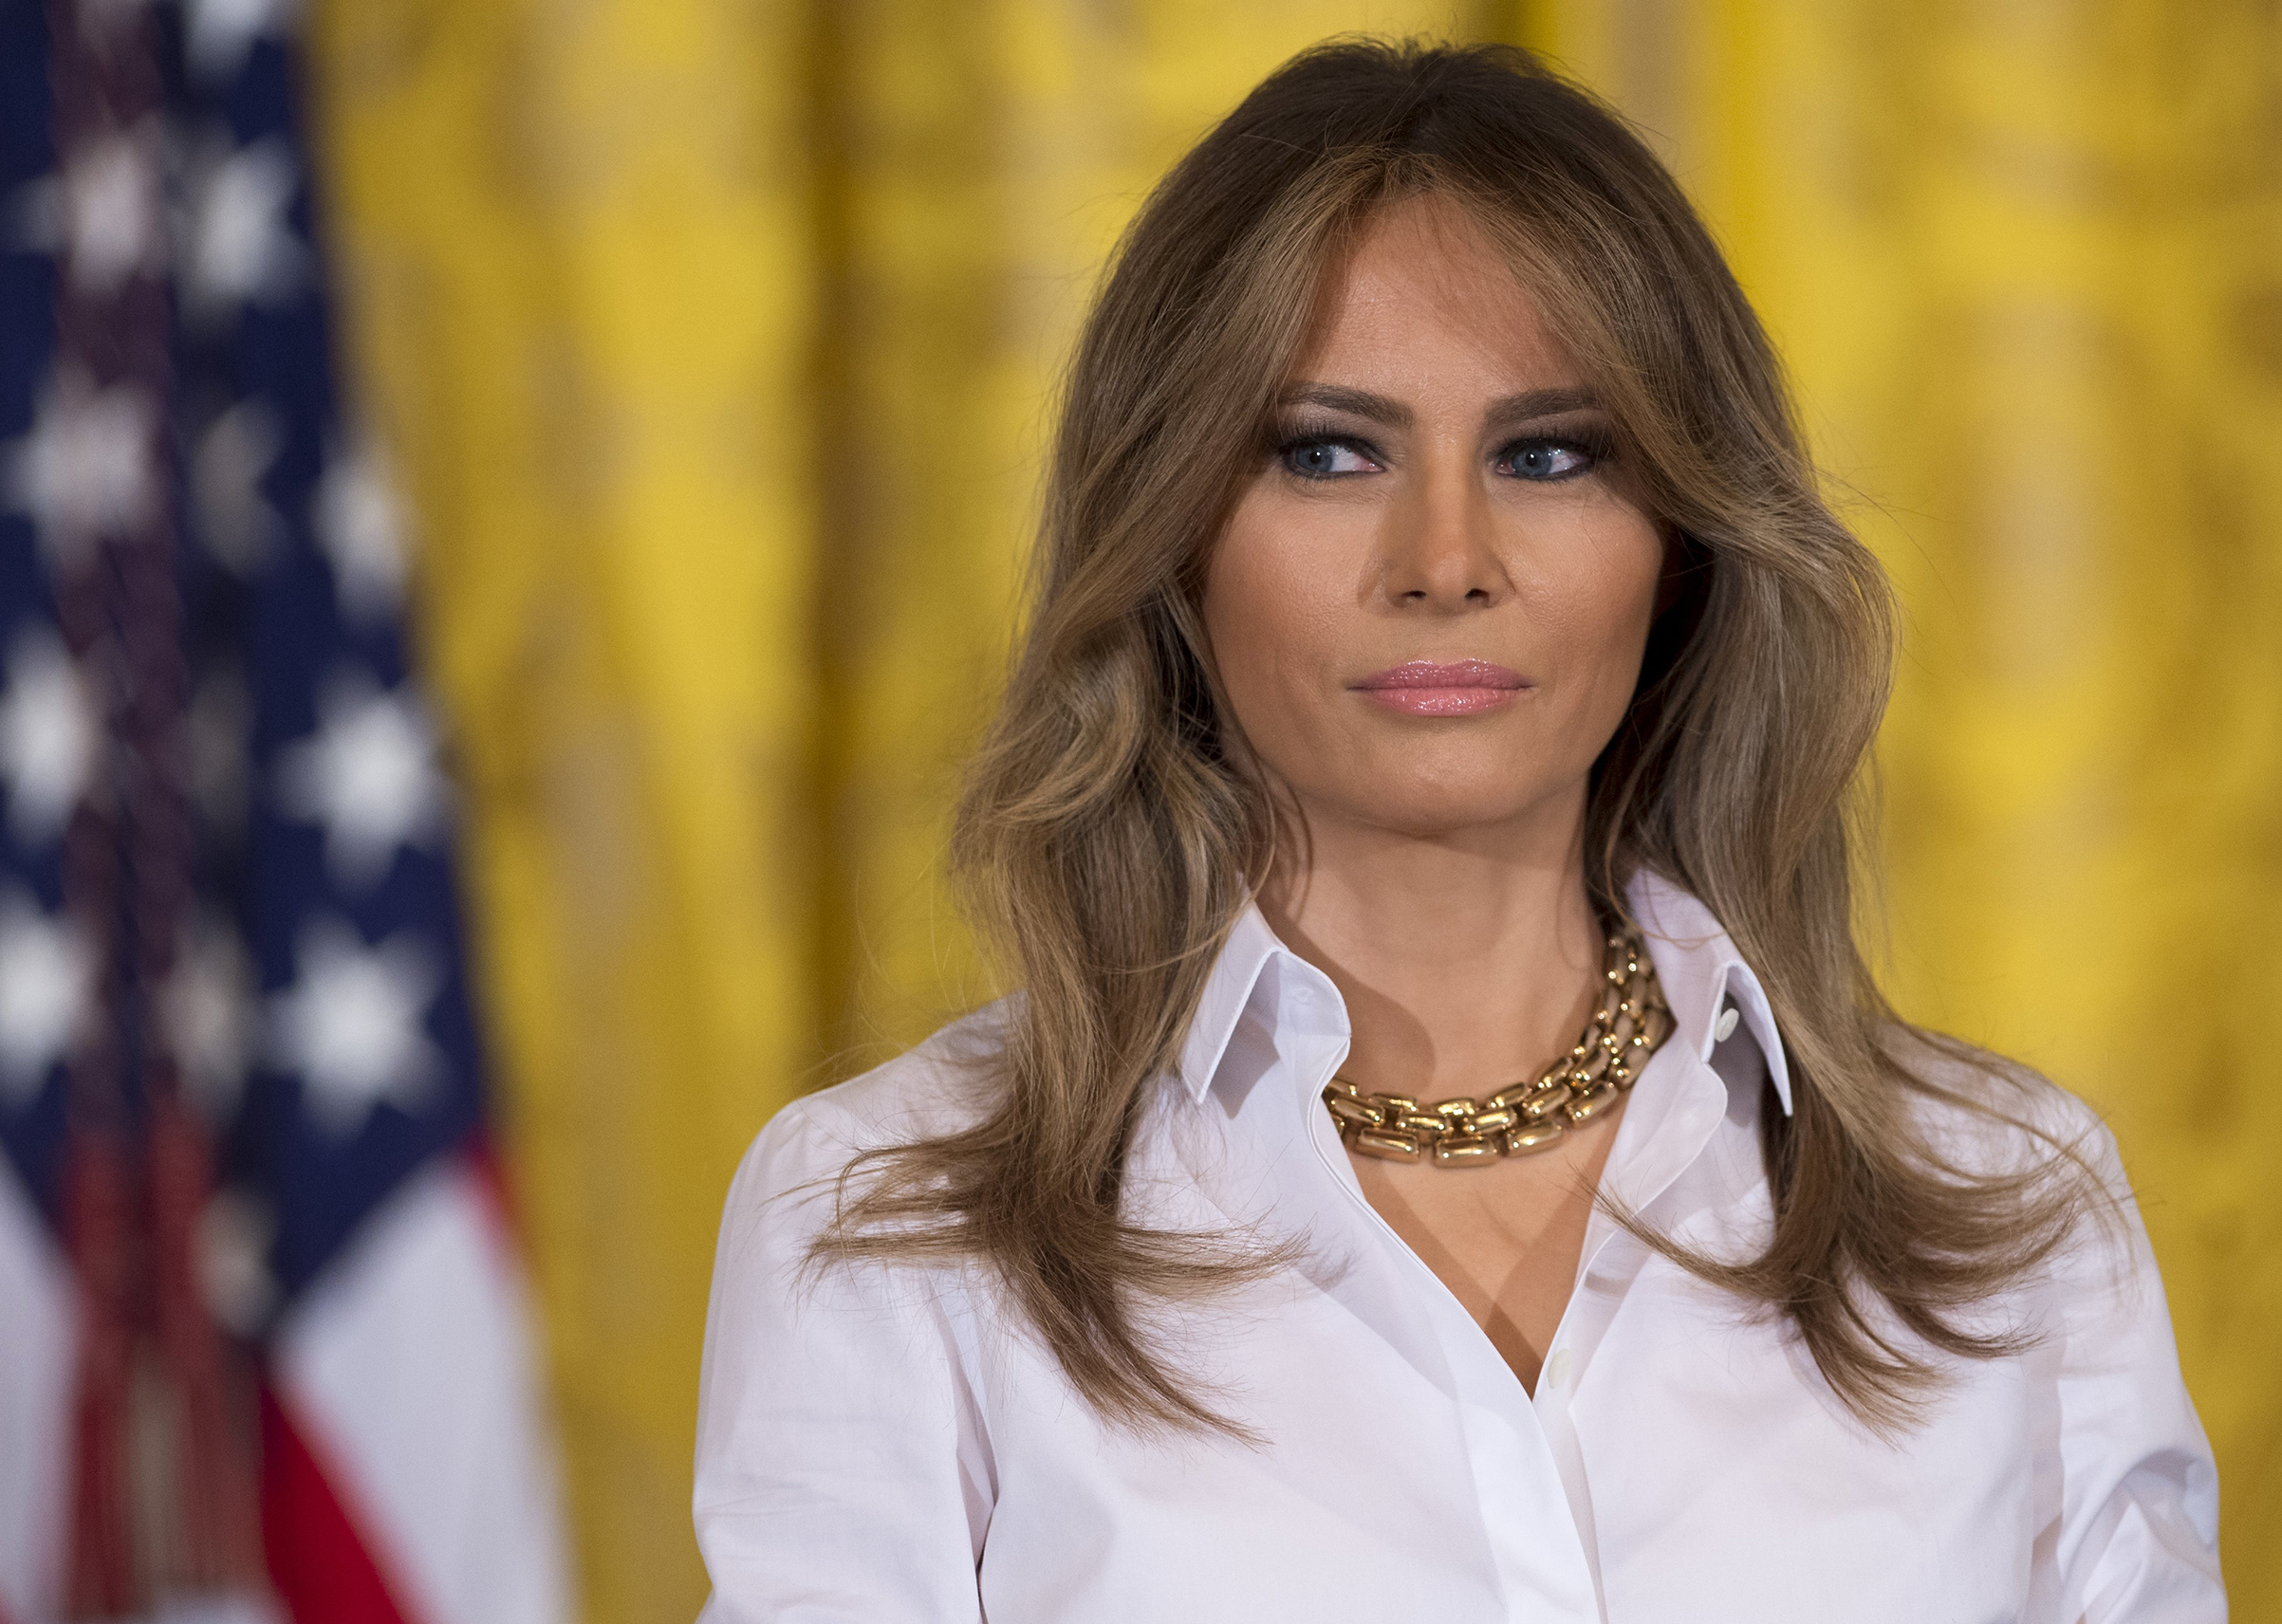 First lady Melania Trump wearing chunky, chain-link gold necklace, speaks during a Mother's Day event for military spouses in the East Room of the White House in Washington, D.C., May 12, 2017.